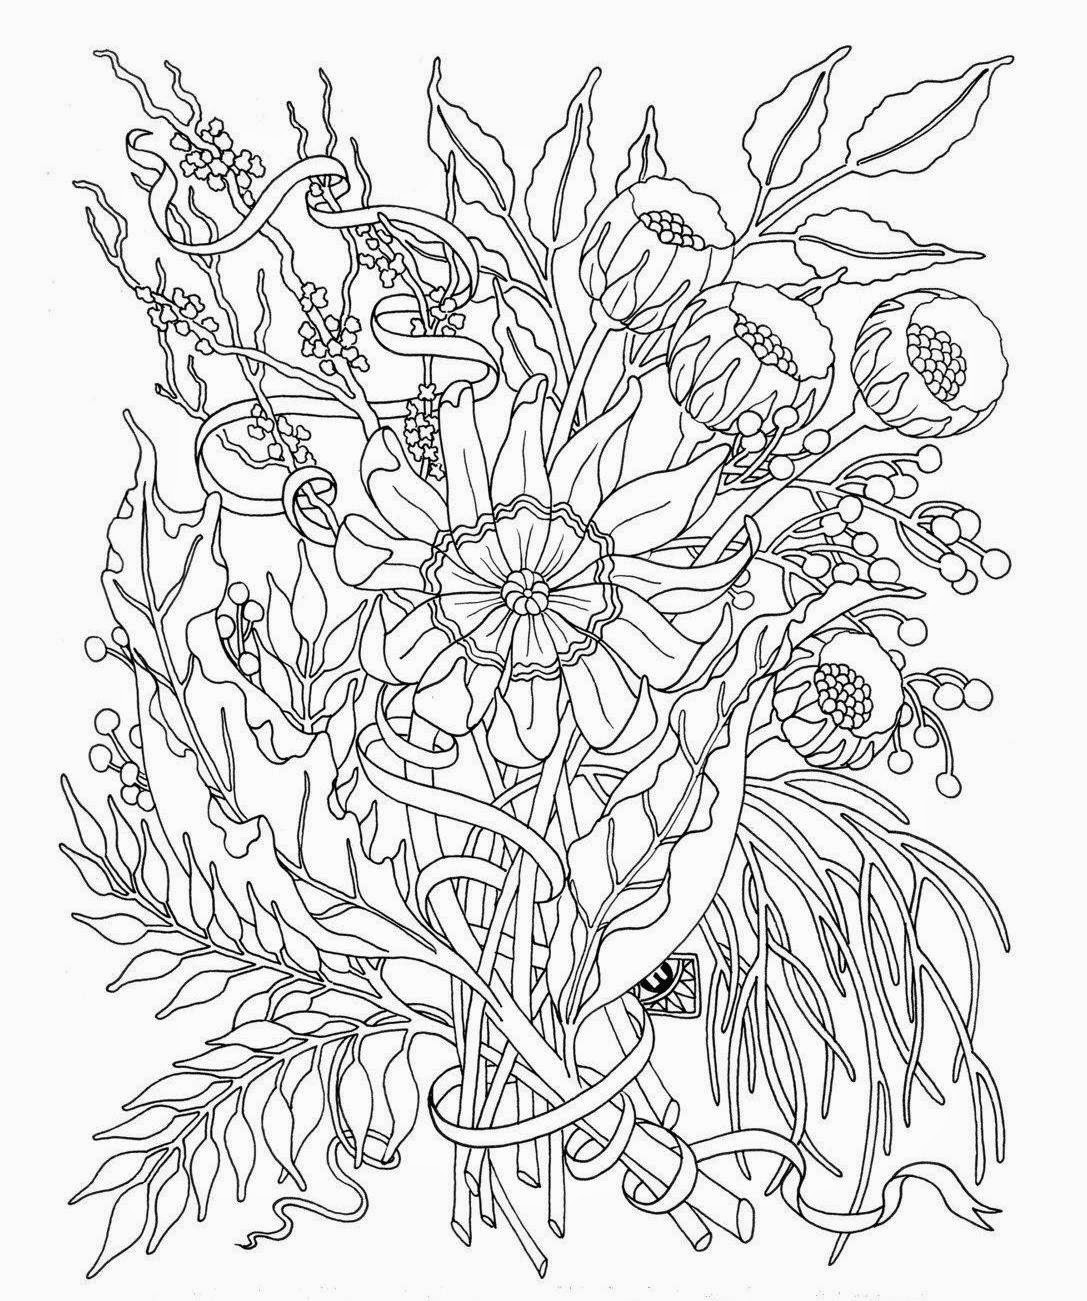 pichers of flowers unique best vases flower vase coloring page pages flowers in a top i